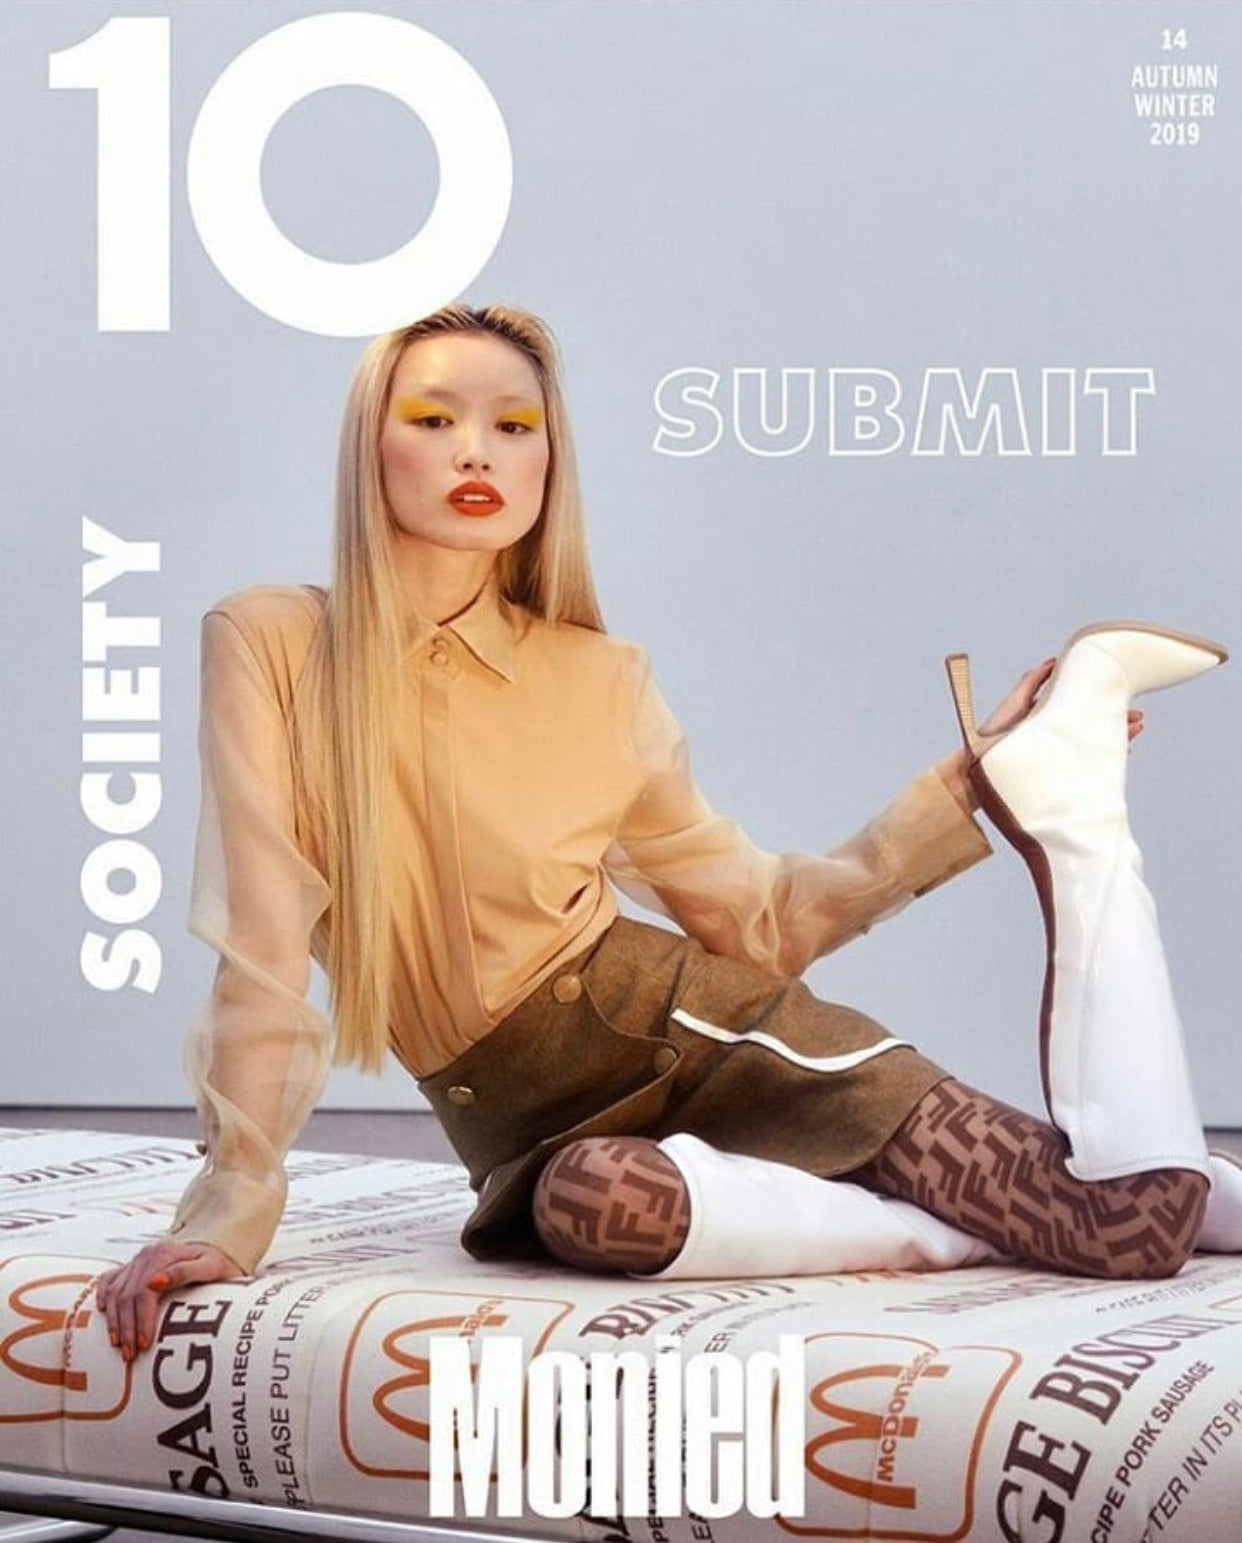 10 Magazine - Hungry Planet Autumn Winter 2019